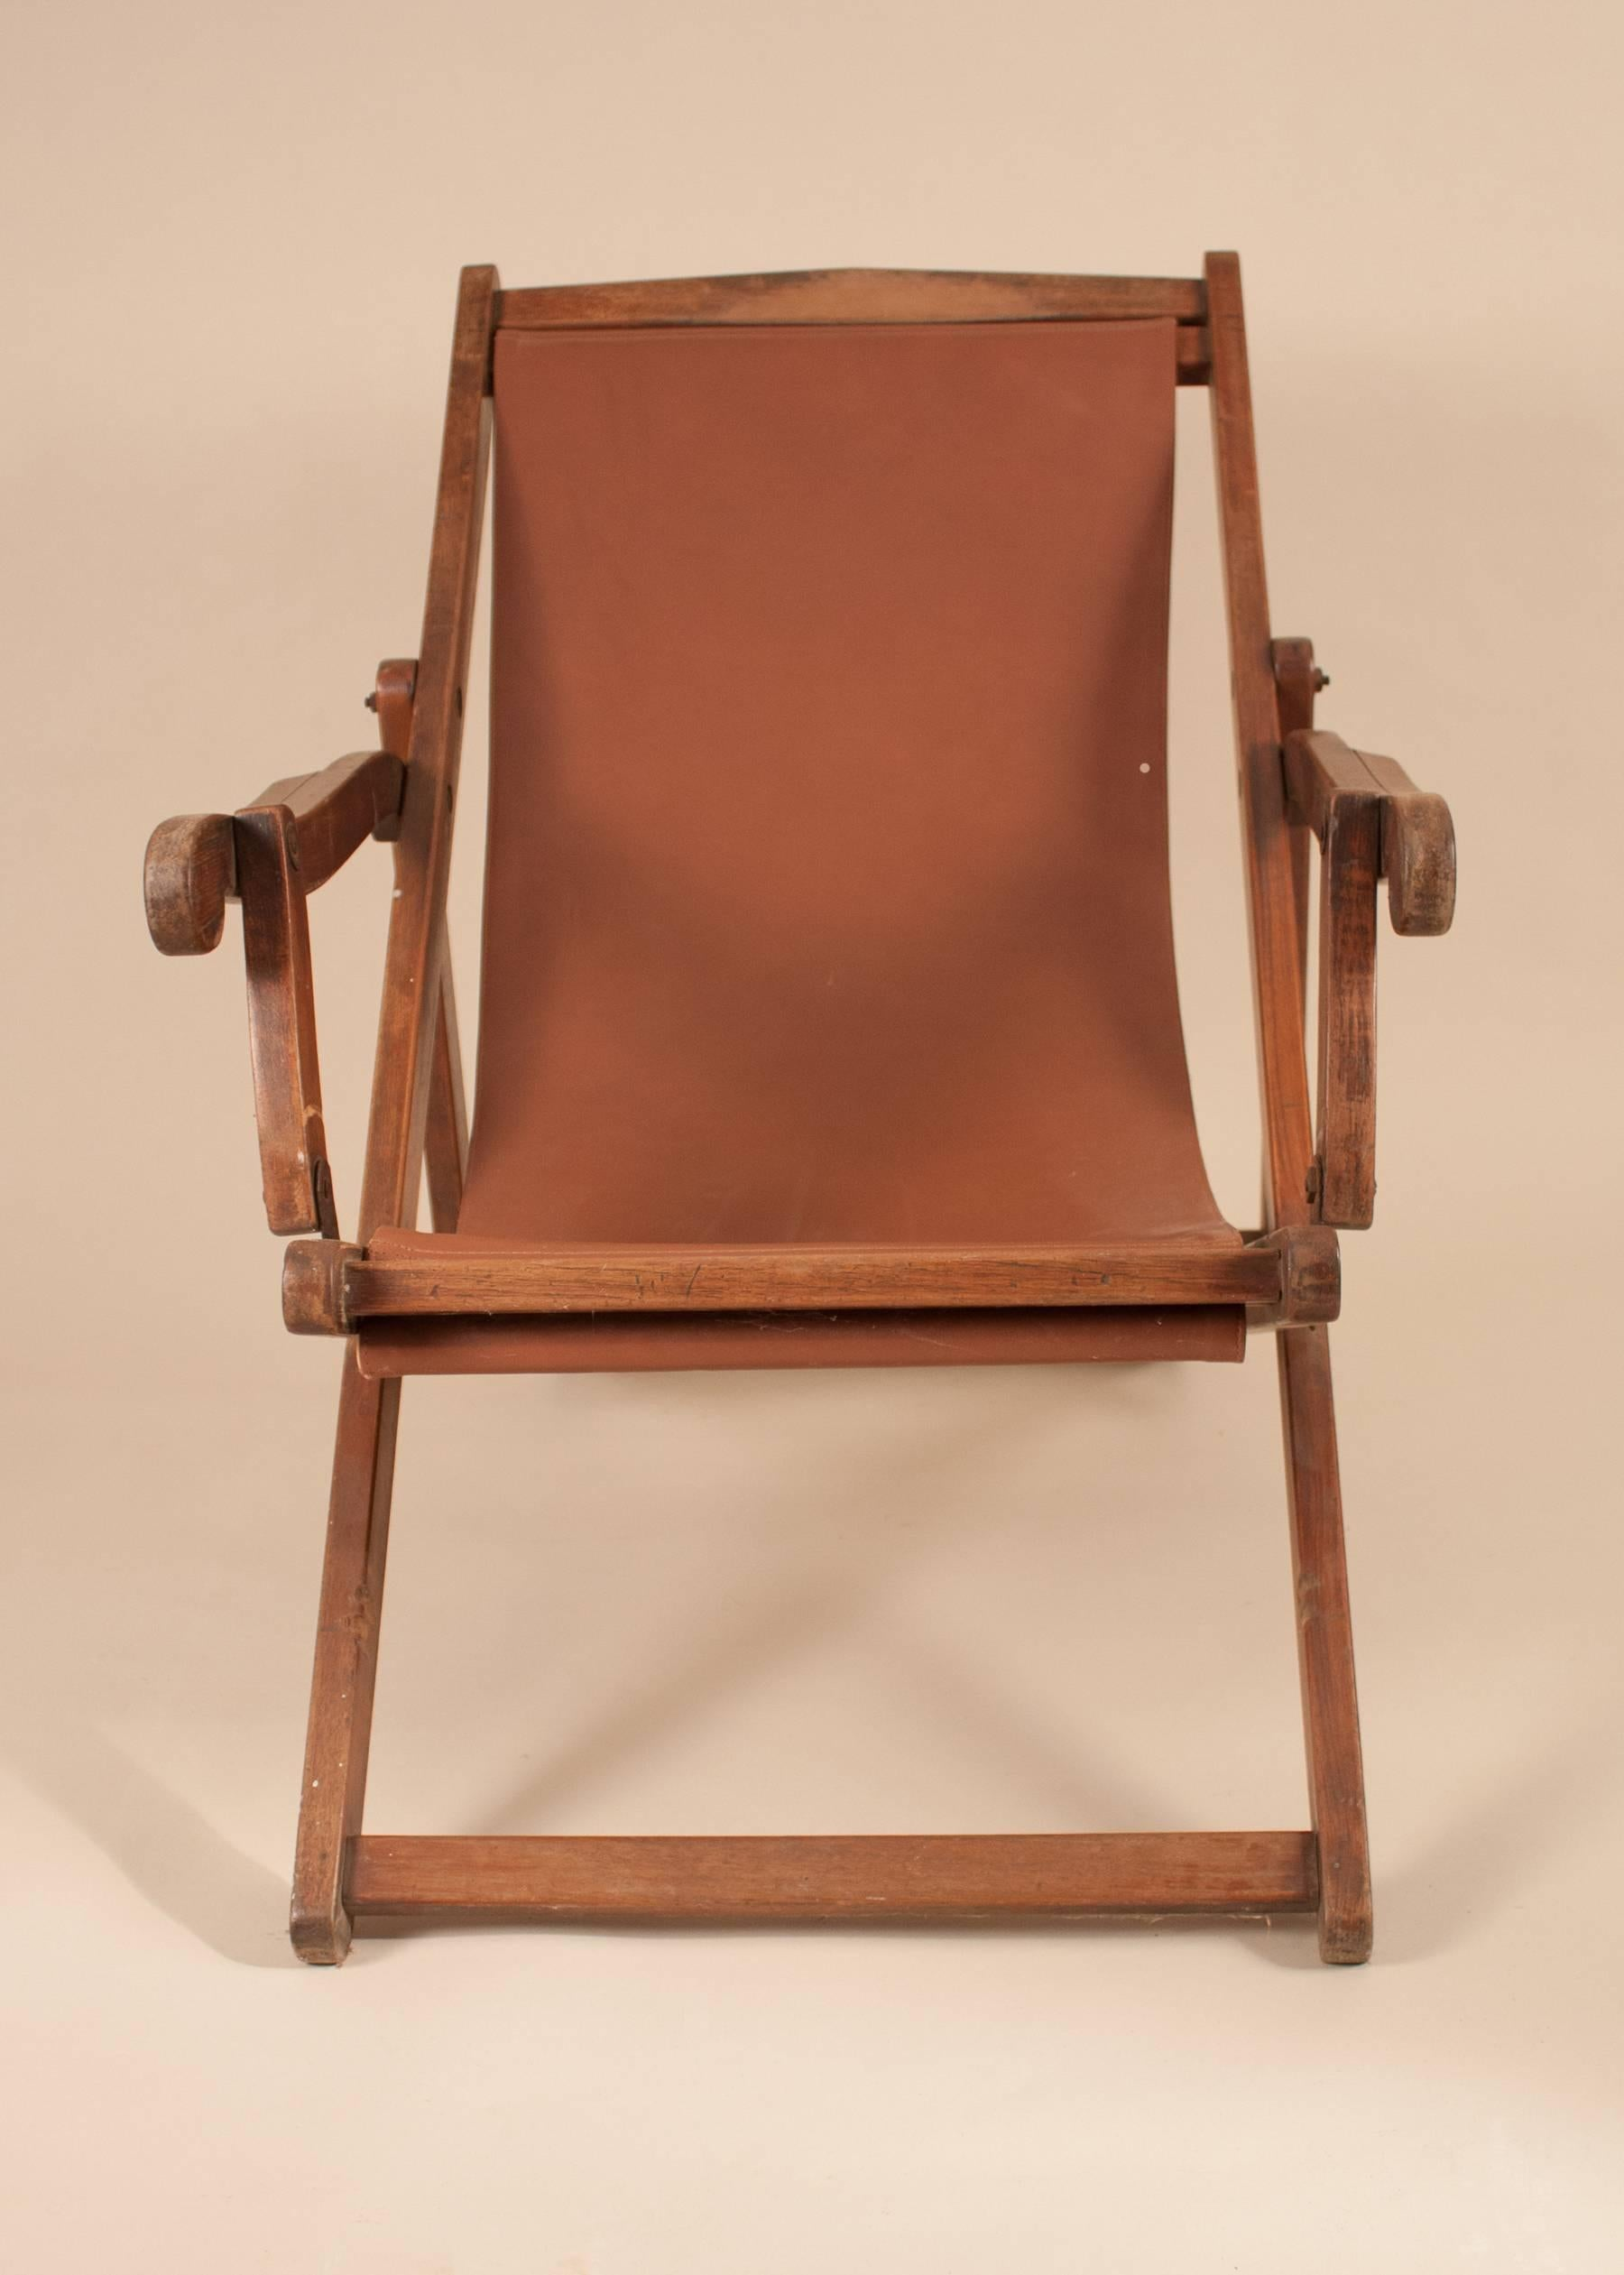 British Campaign Folding And Adjustable Mahogany Sling Back Chair With Its  Original Wood Finish. The